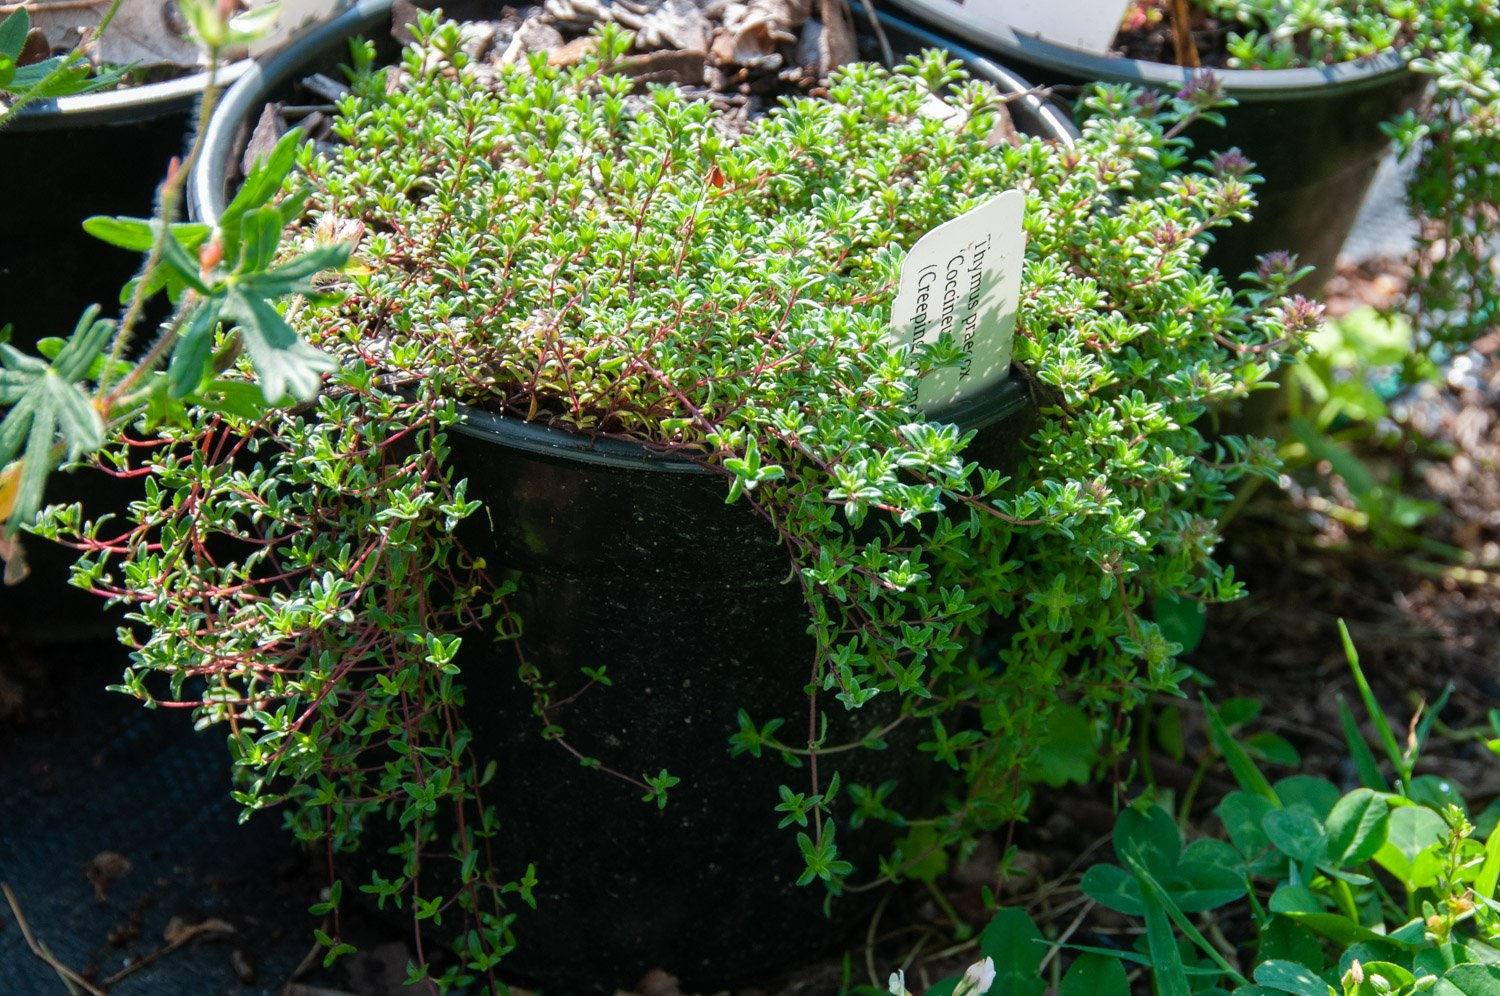 Creeping Thyme draping over edge of pot